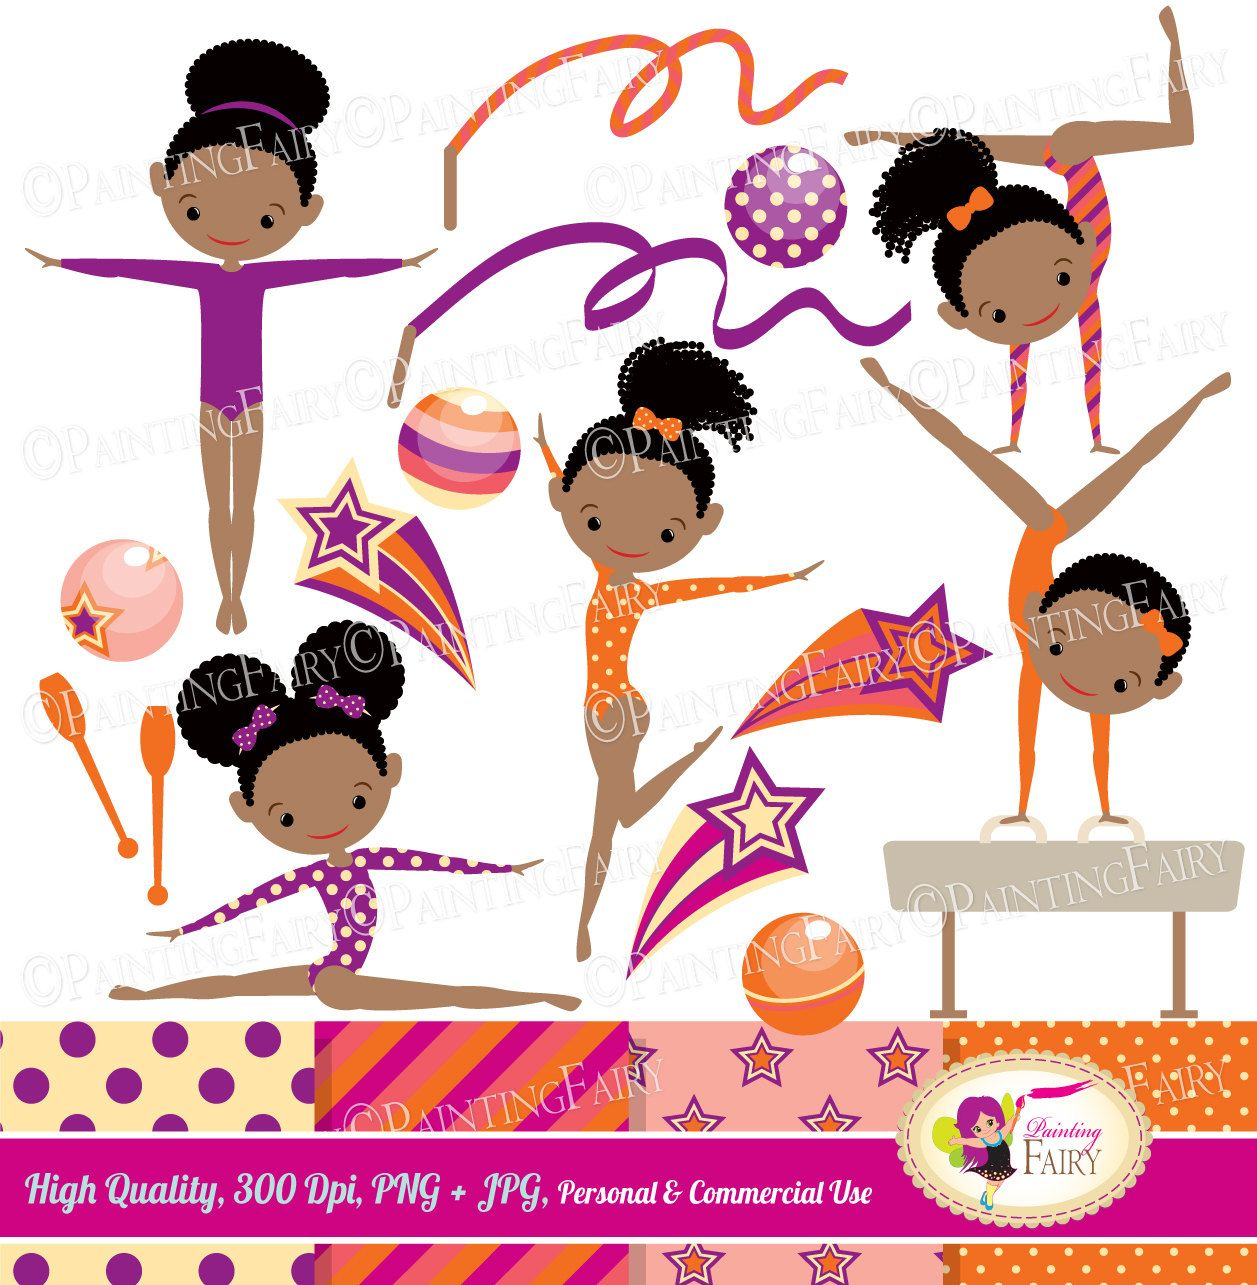 Little Girl Gymnasts Clip Art Set Afro Girl Cliparts Cute dress rhythmic gymnastic acrobatic Sport ribbon elements Digital Papers pf00064-1f by PaintingFairyClipart on Etsy